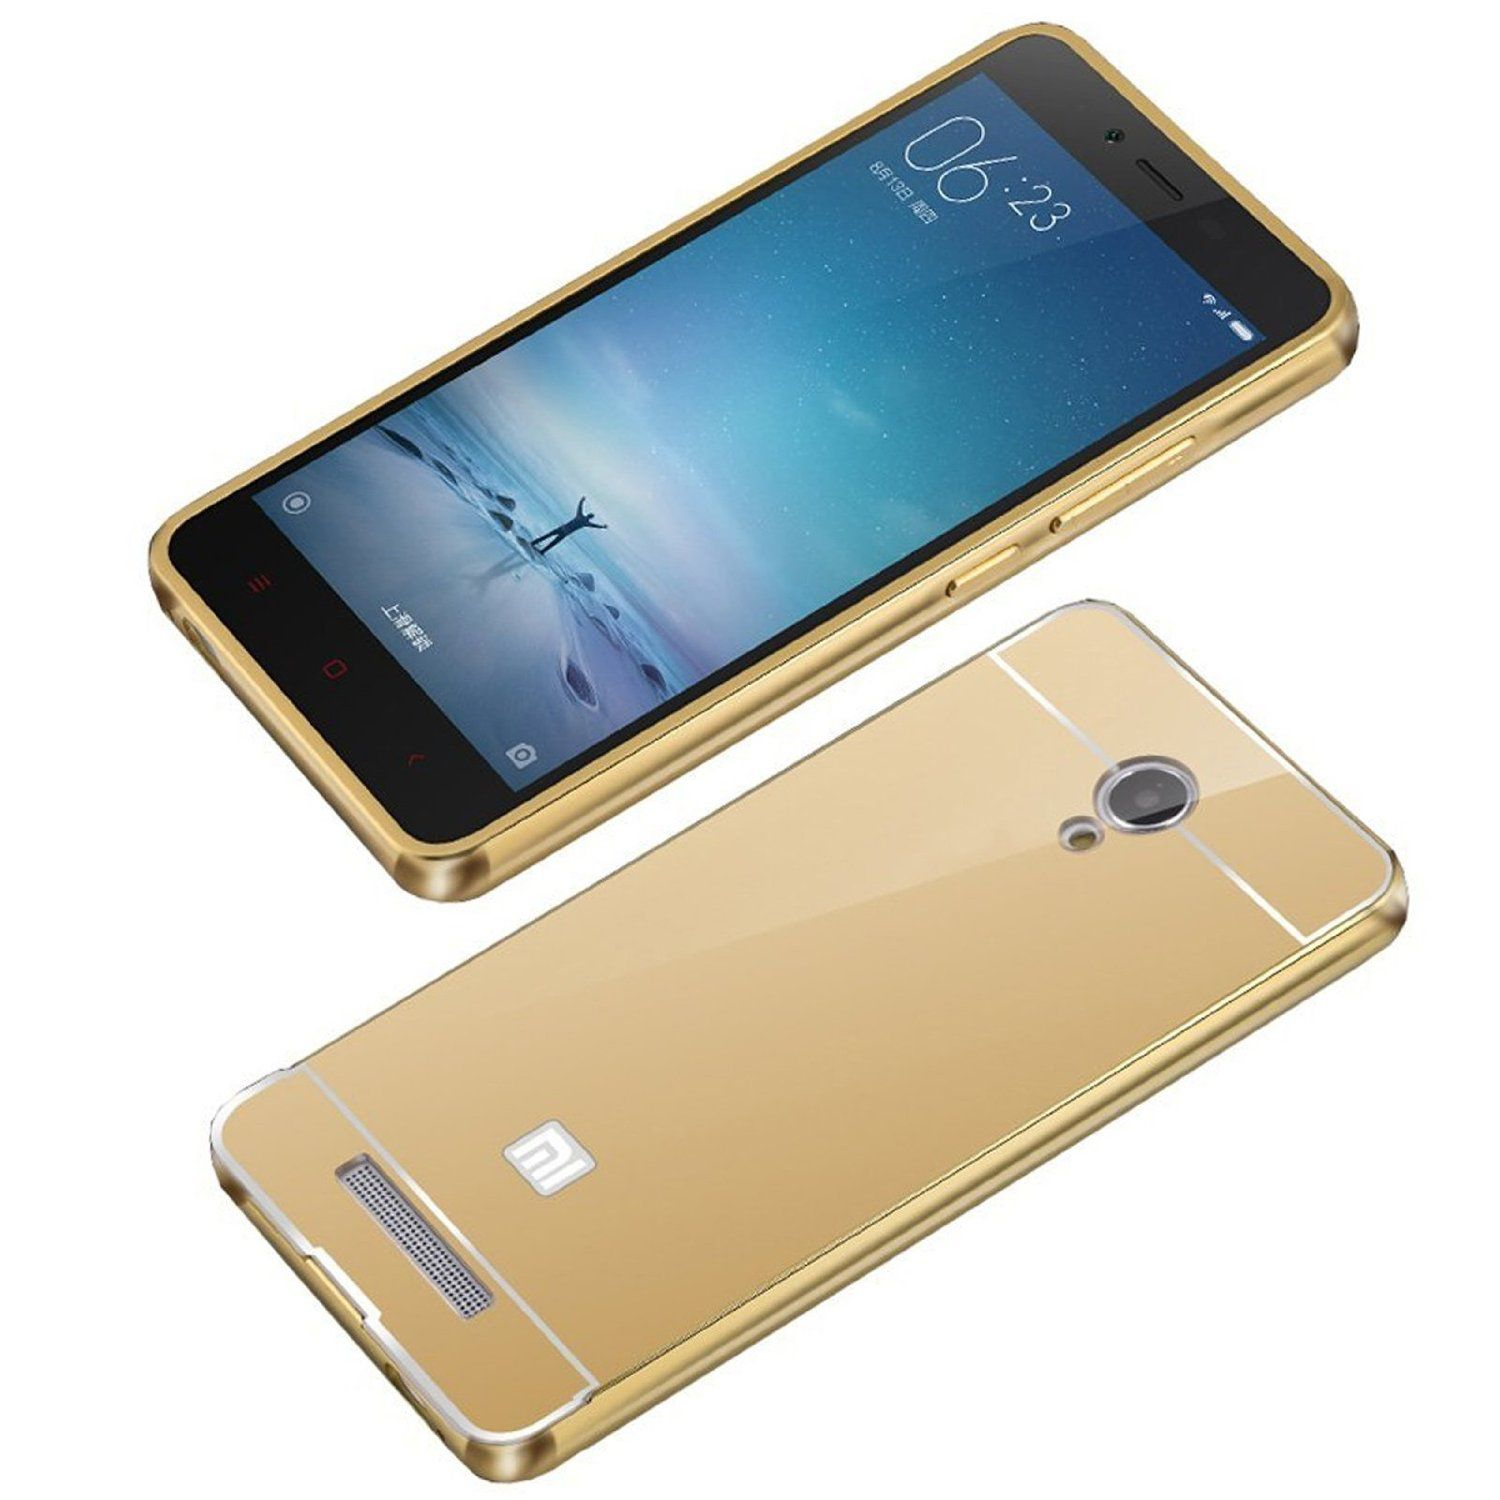 Style Crome Metal Bumper + Acrylic Mirror Back Cover Case For SamsungE5 Gold + Flexible Portable Thumb OK Stand